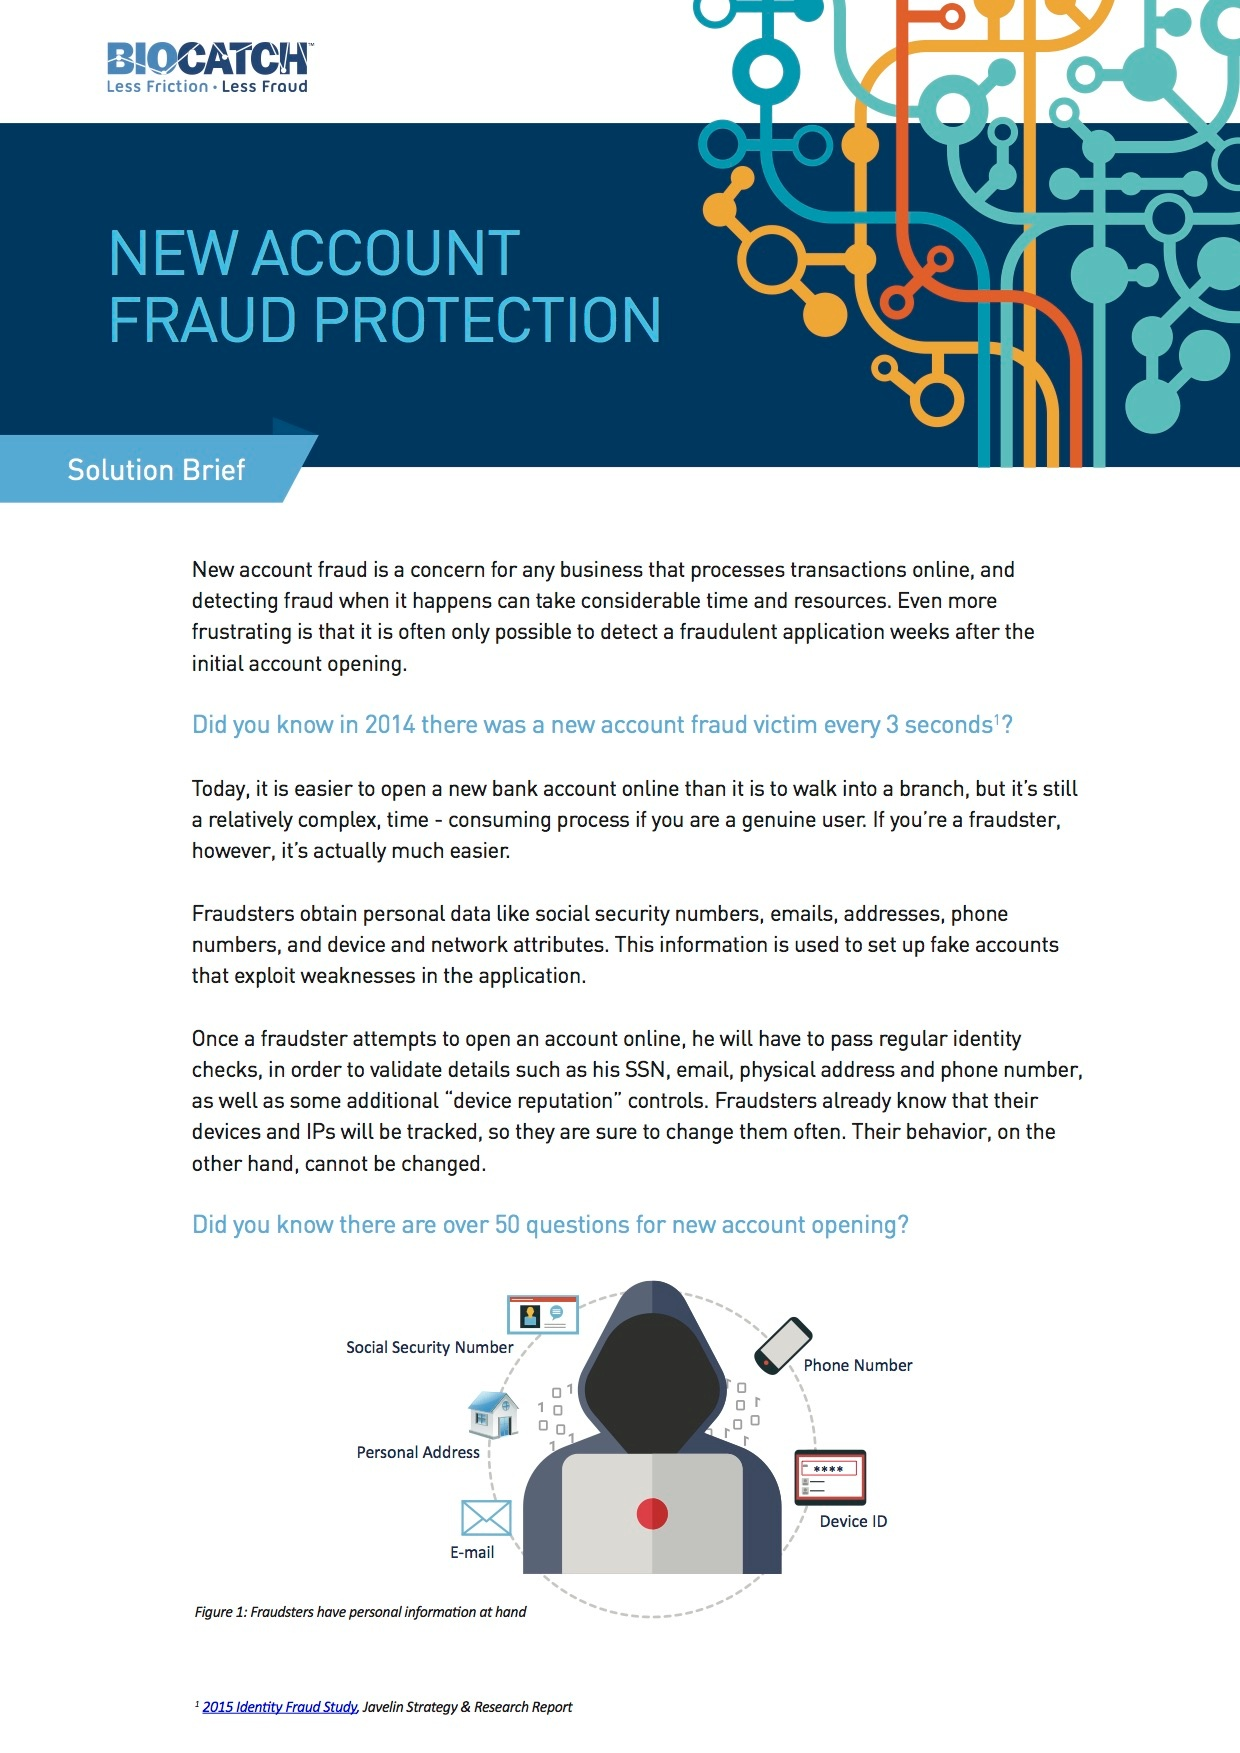 (19) BioCatch New Account Fraud Brochure.jpg